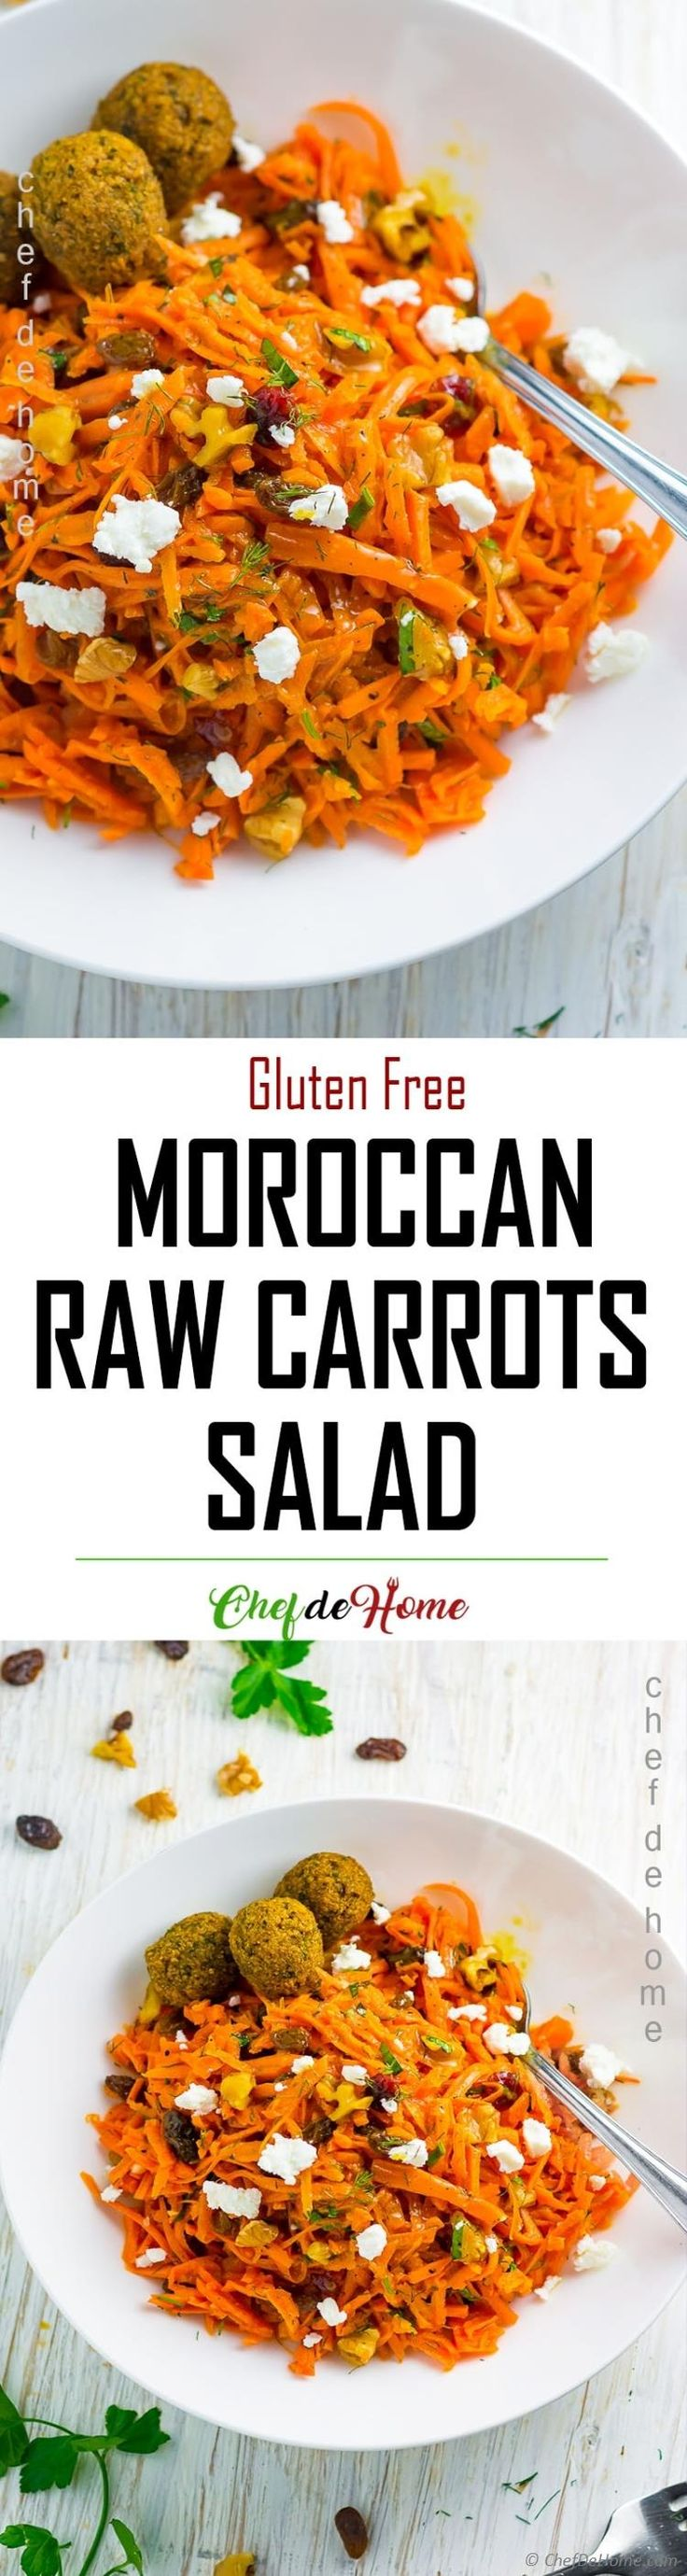 Moroccan carrot salad, a grated raw carrot salad with walnuts, raisins, and refreshing sweet-and-sour honey, turmeric and ginger dressing. Gluten free with at-least 2 carrots in each serving. So, let's eat more raw carrots but in a delic...